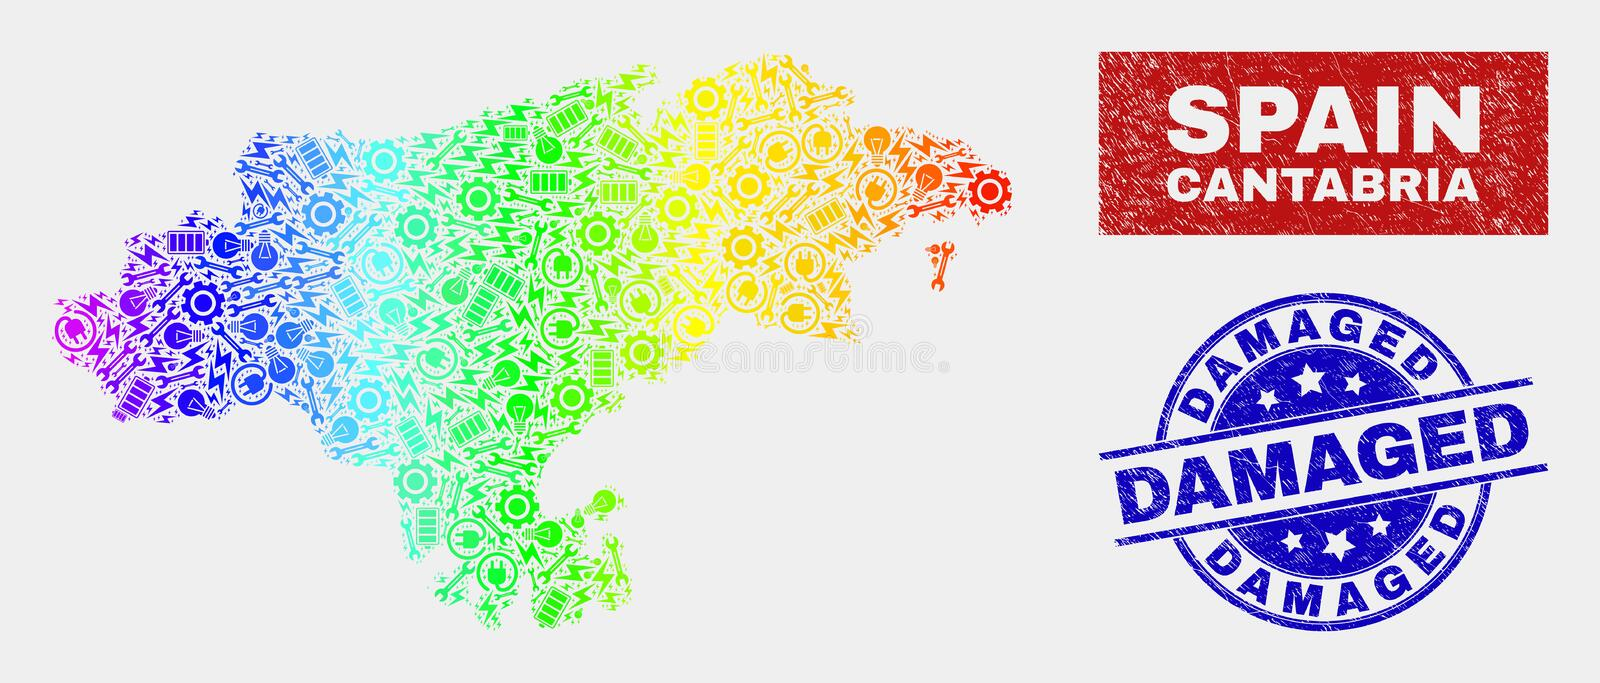 Spectral Component Cantabria Province Map and Scratched Damaged Seals royalty free illustration